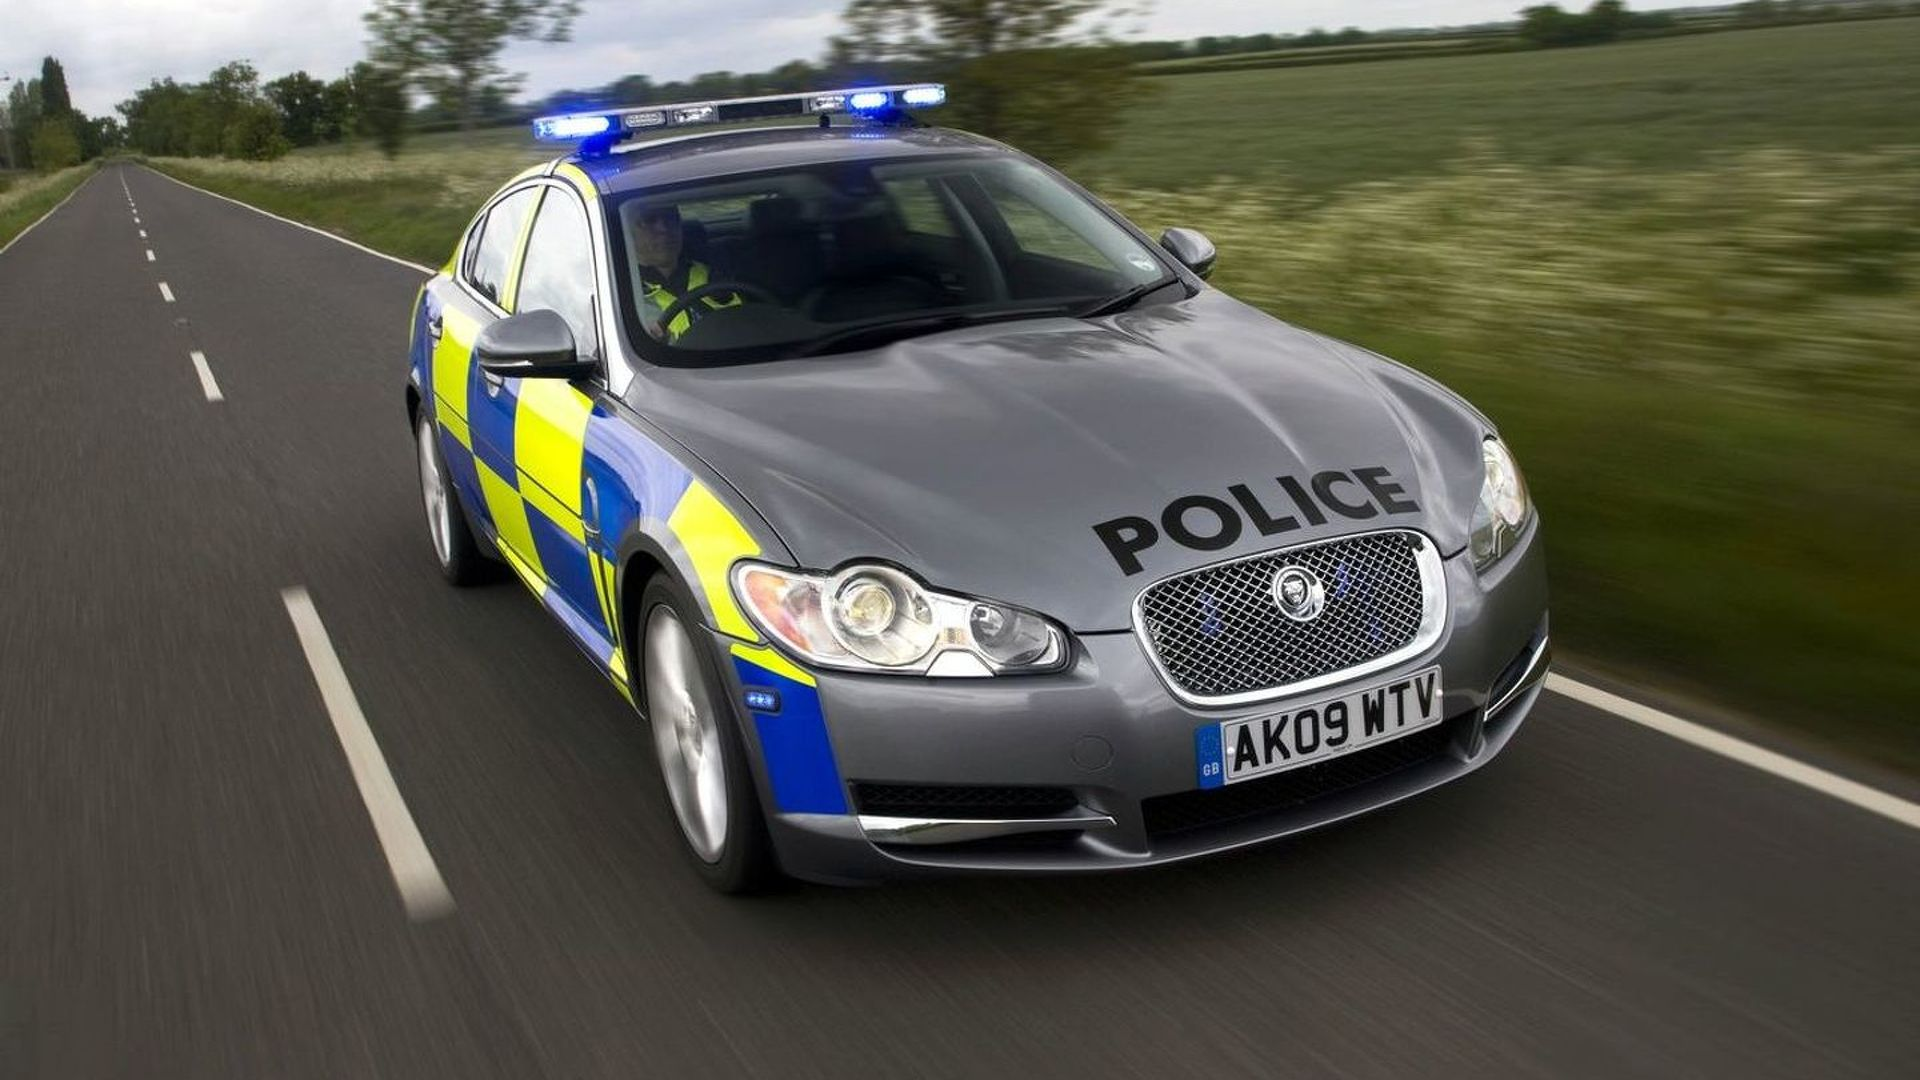 Jaguar Xf Being Evaluated As Police Pursuit Car In The Uk